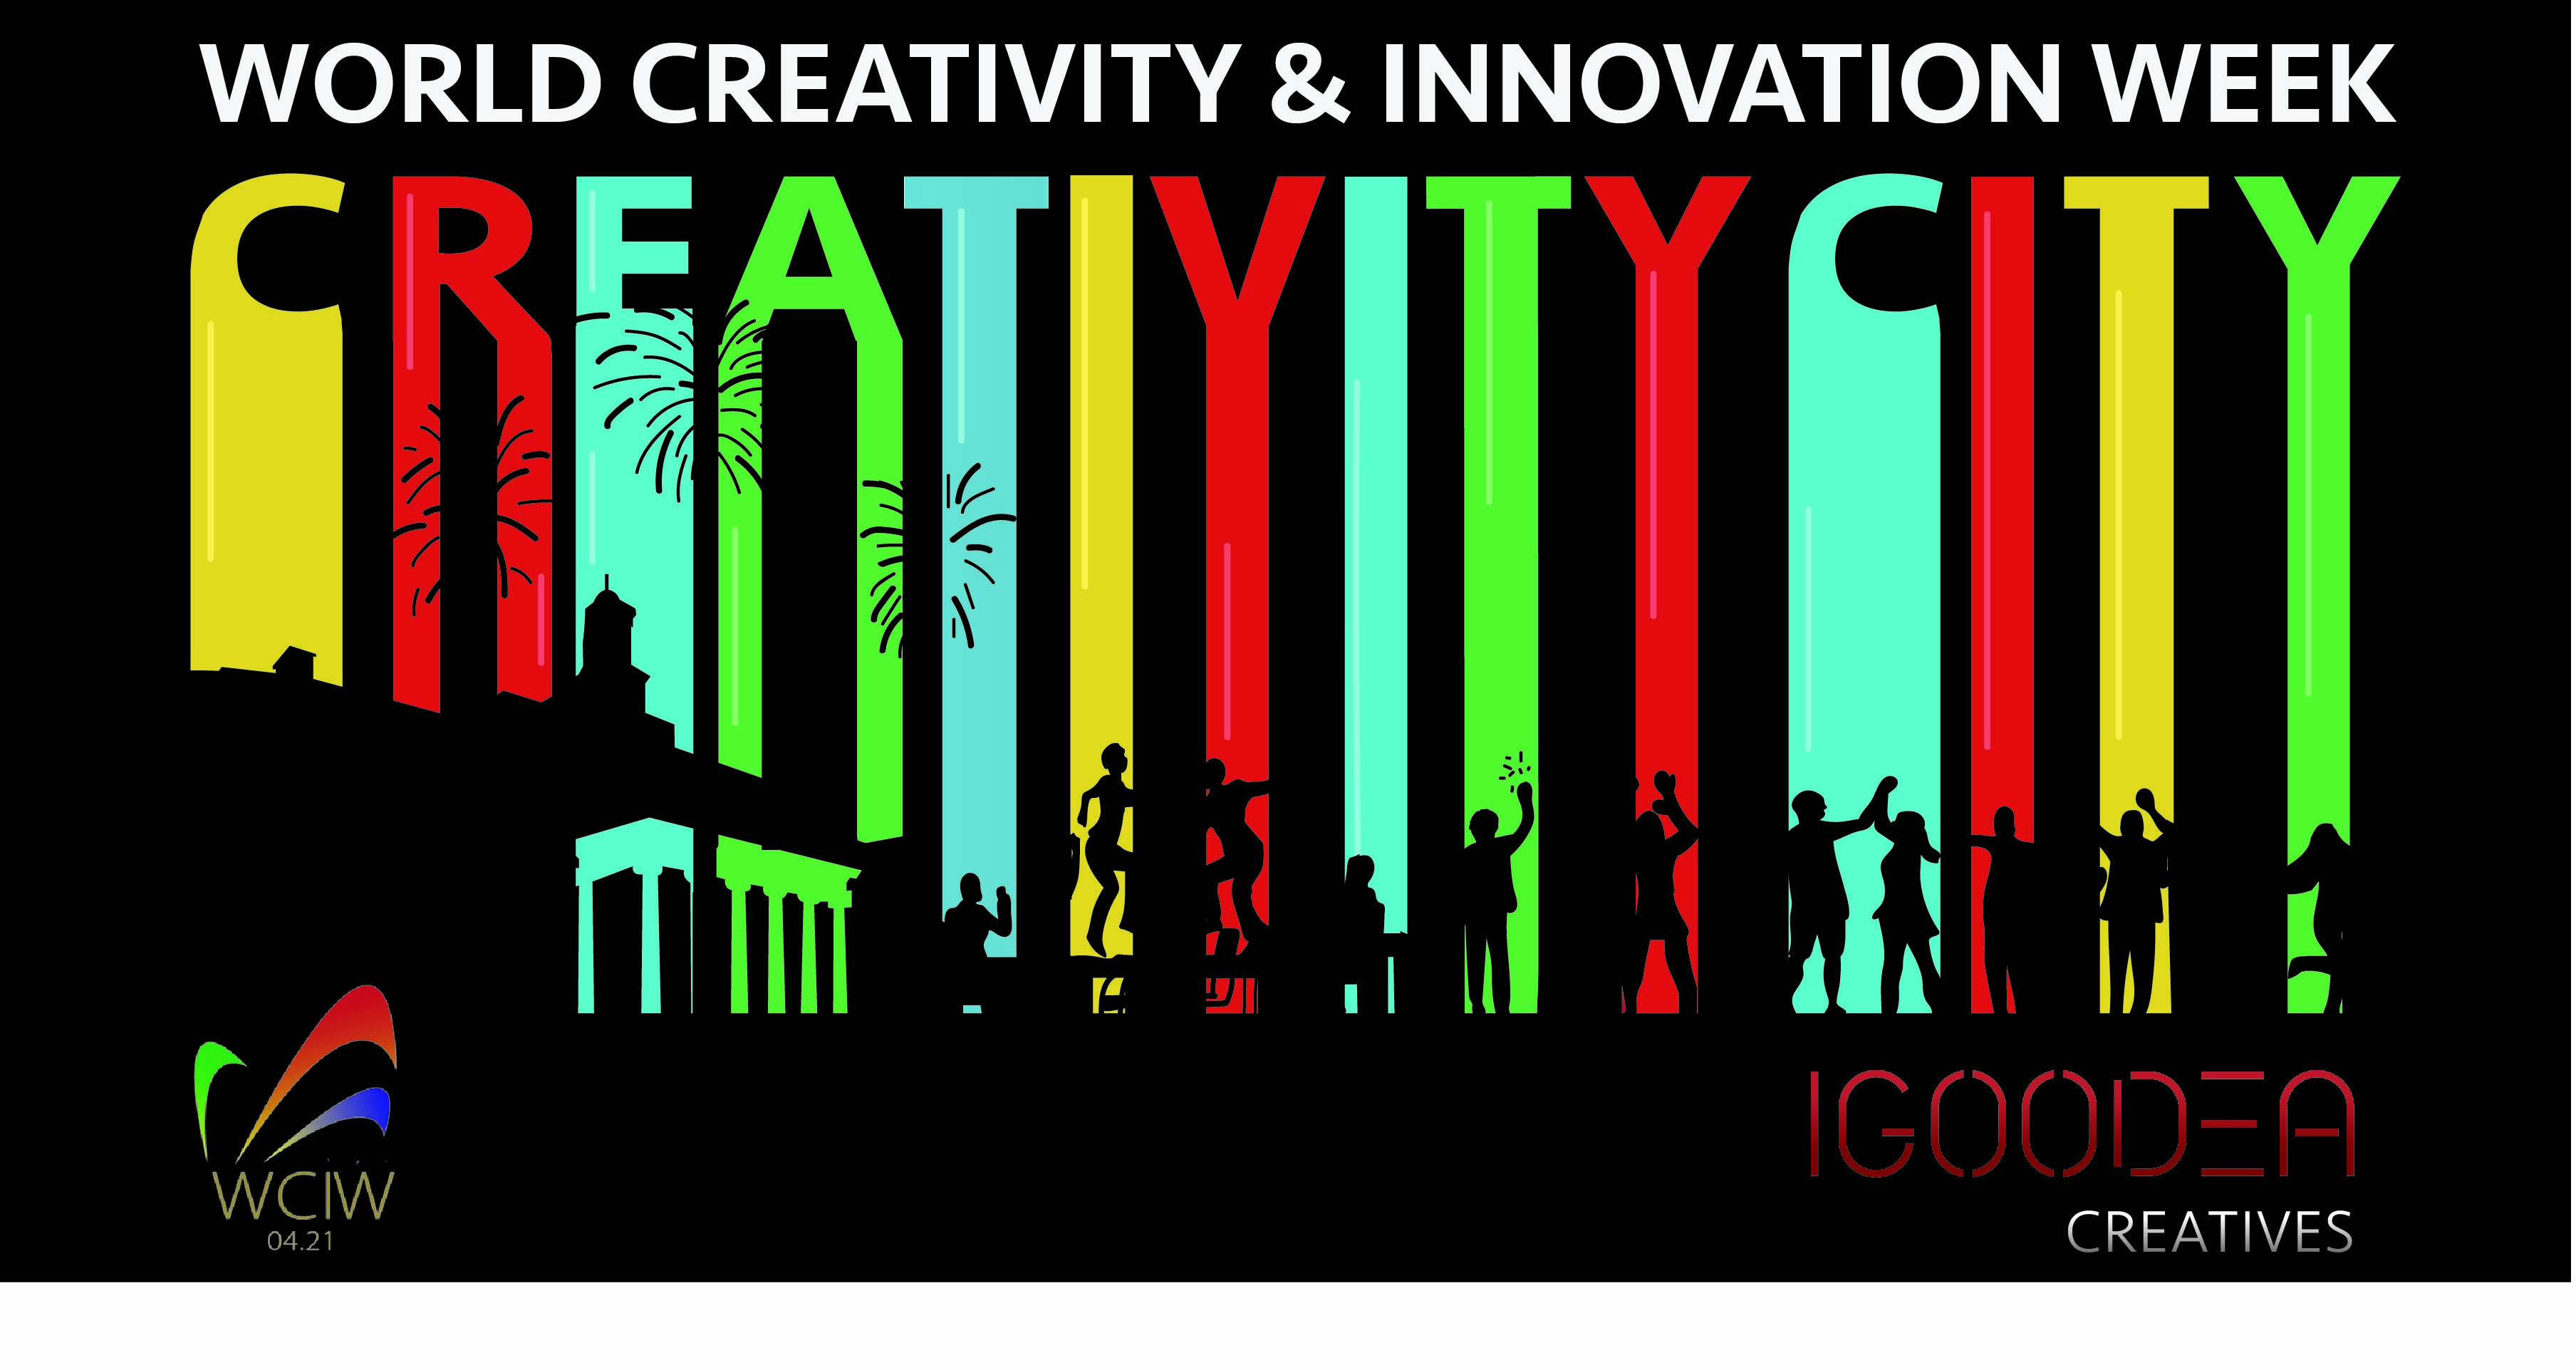 Creativity City logo